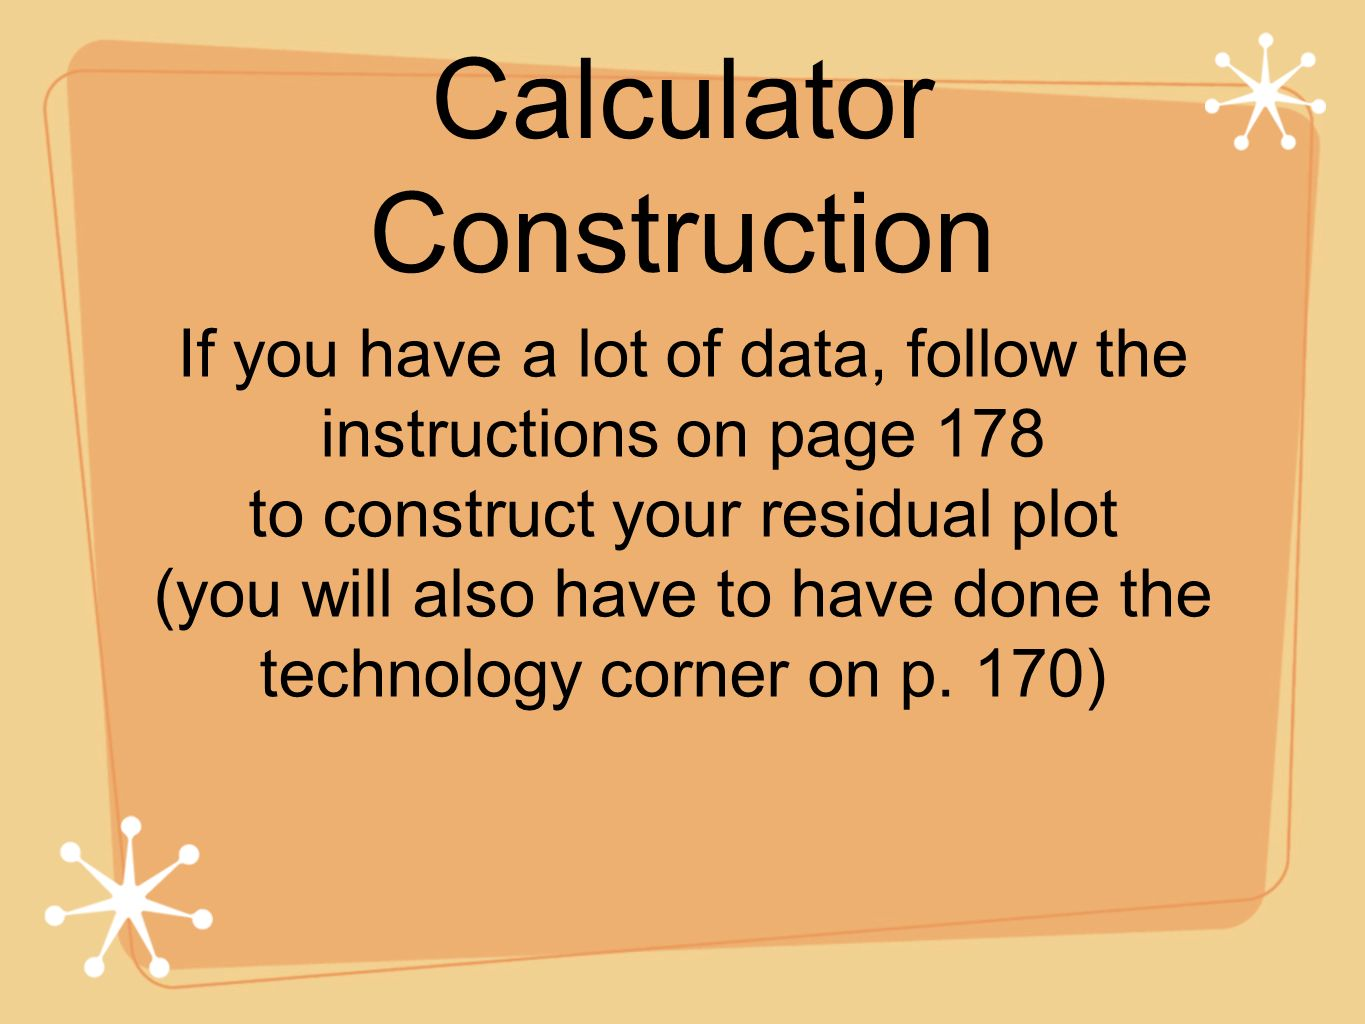 Calculator Construction If you have a lot of data, follow the instructions on page 178 to construct your residual plot (you will also have to have done the technology corner on p.